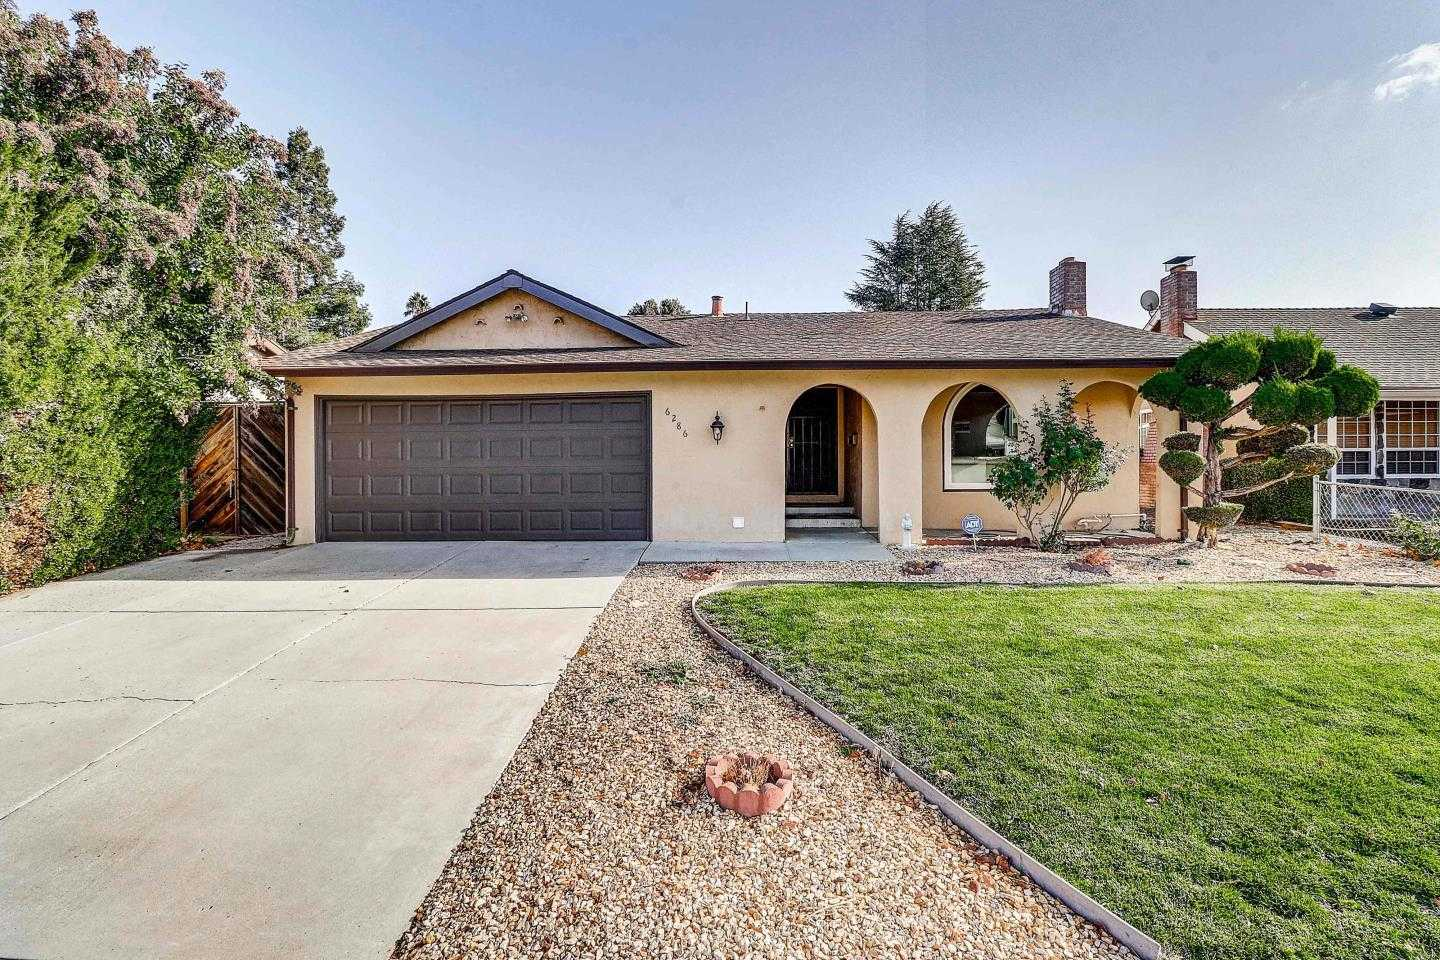 $1,080,000 - 4Br/2Ba -  for Sale in San Jose